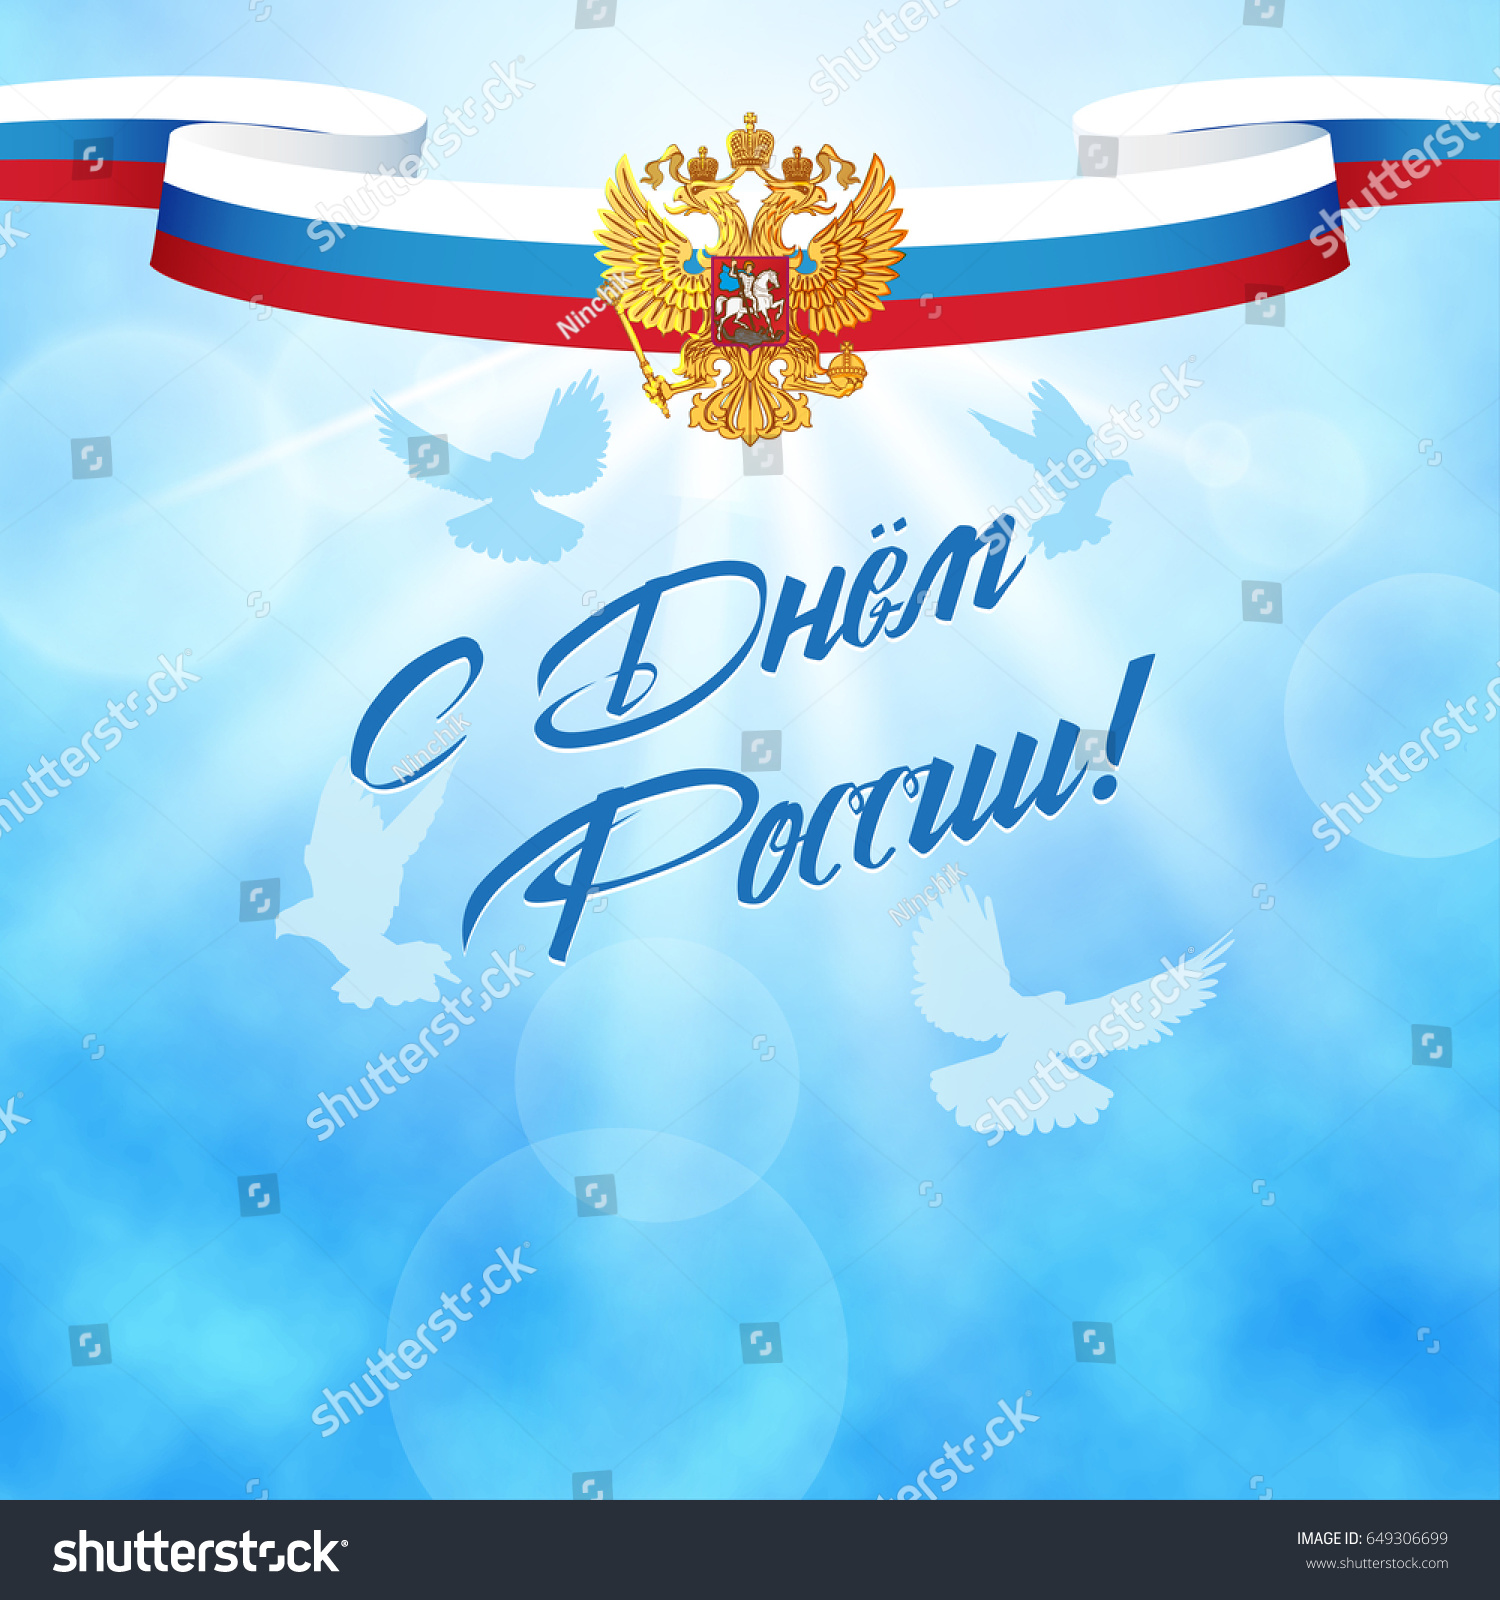 Russia Day Russian Flag Emblem Russia Stock Vector 649306699